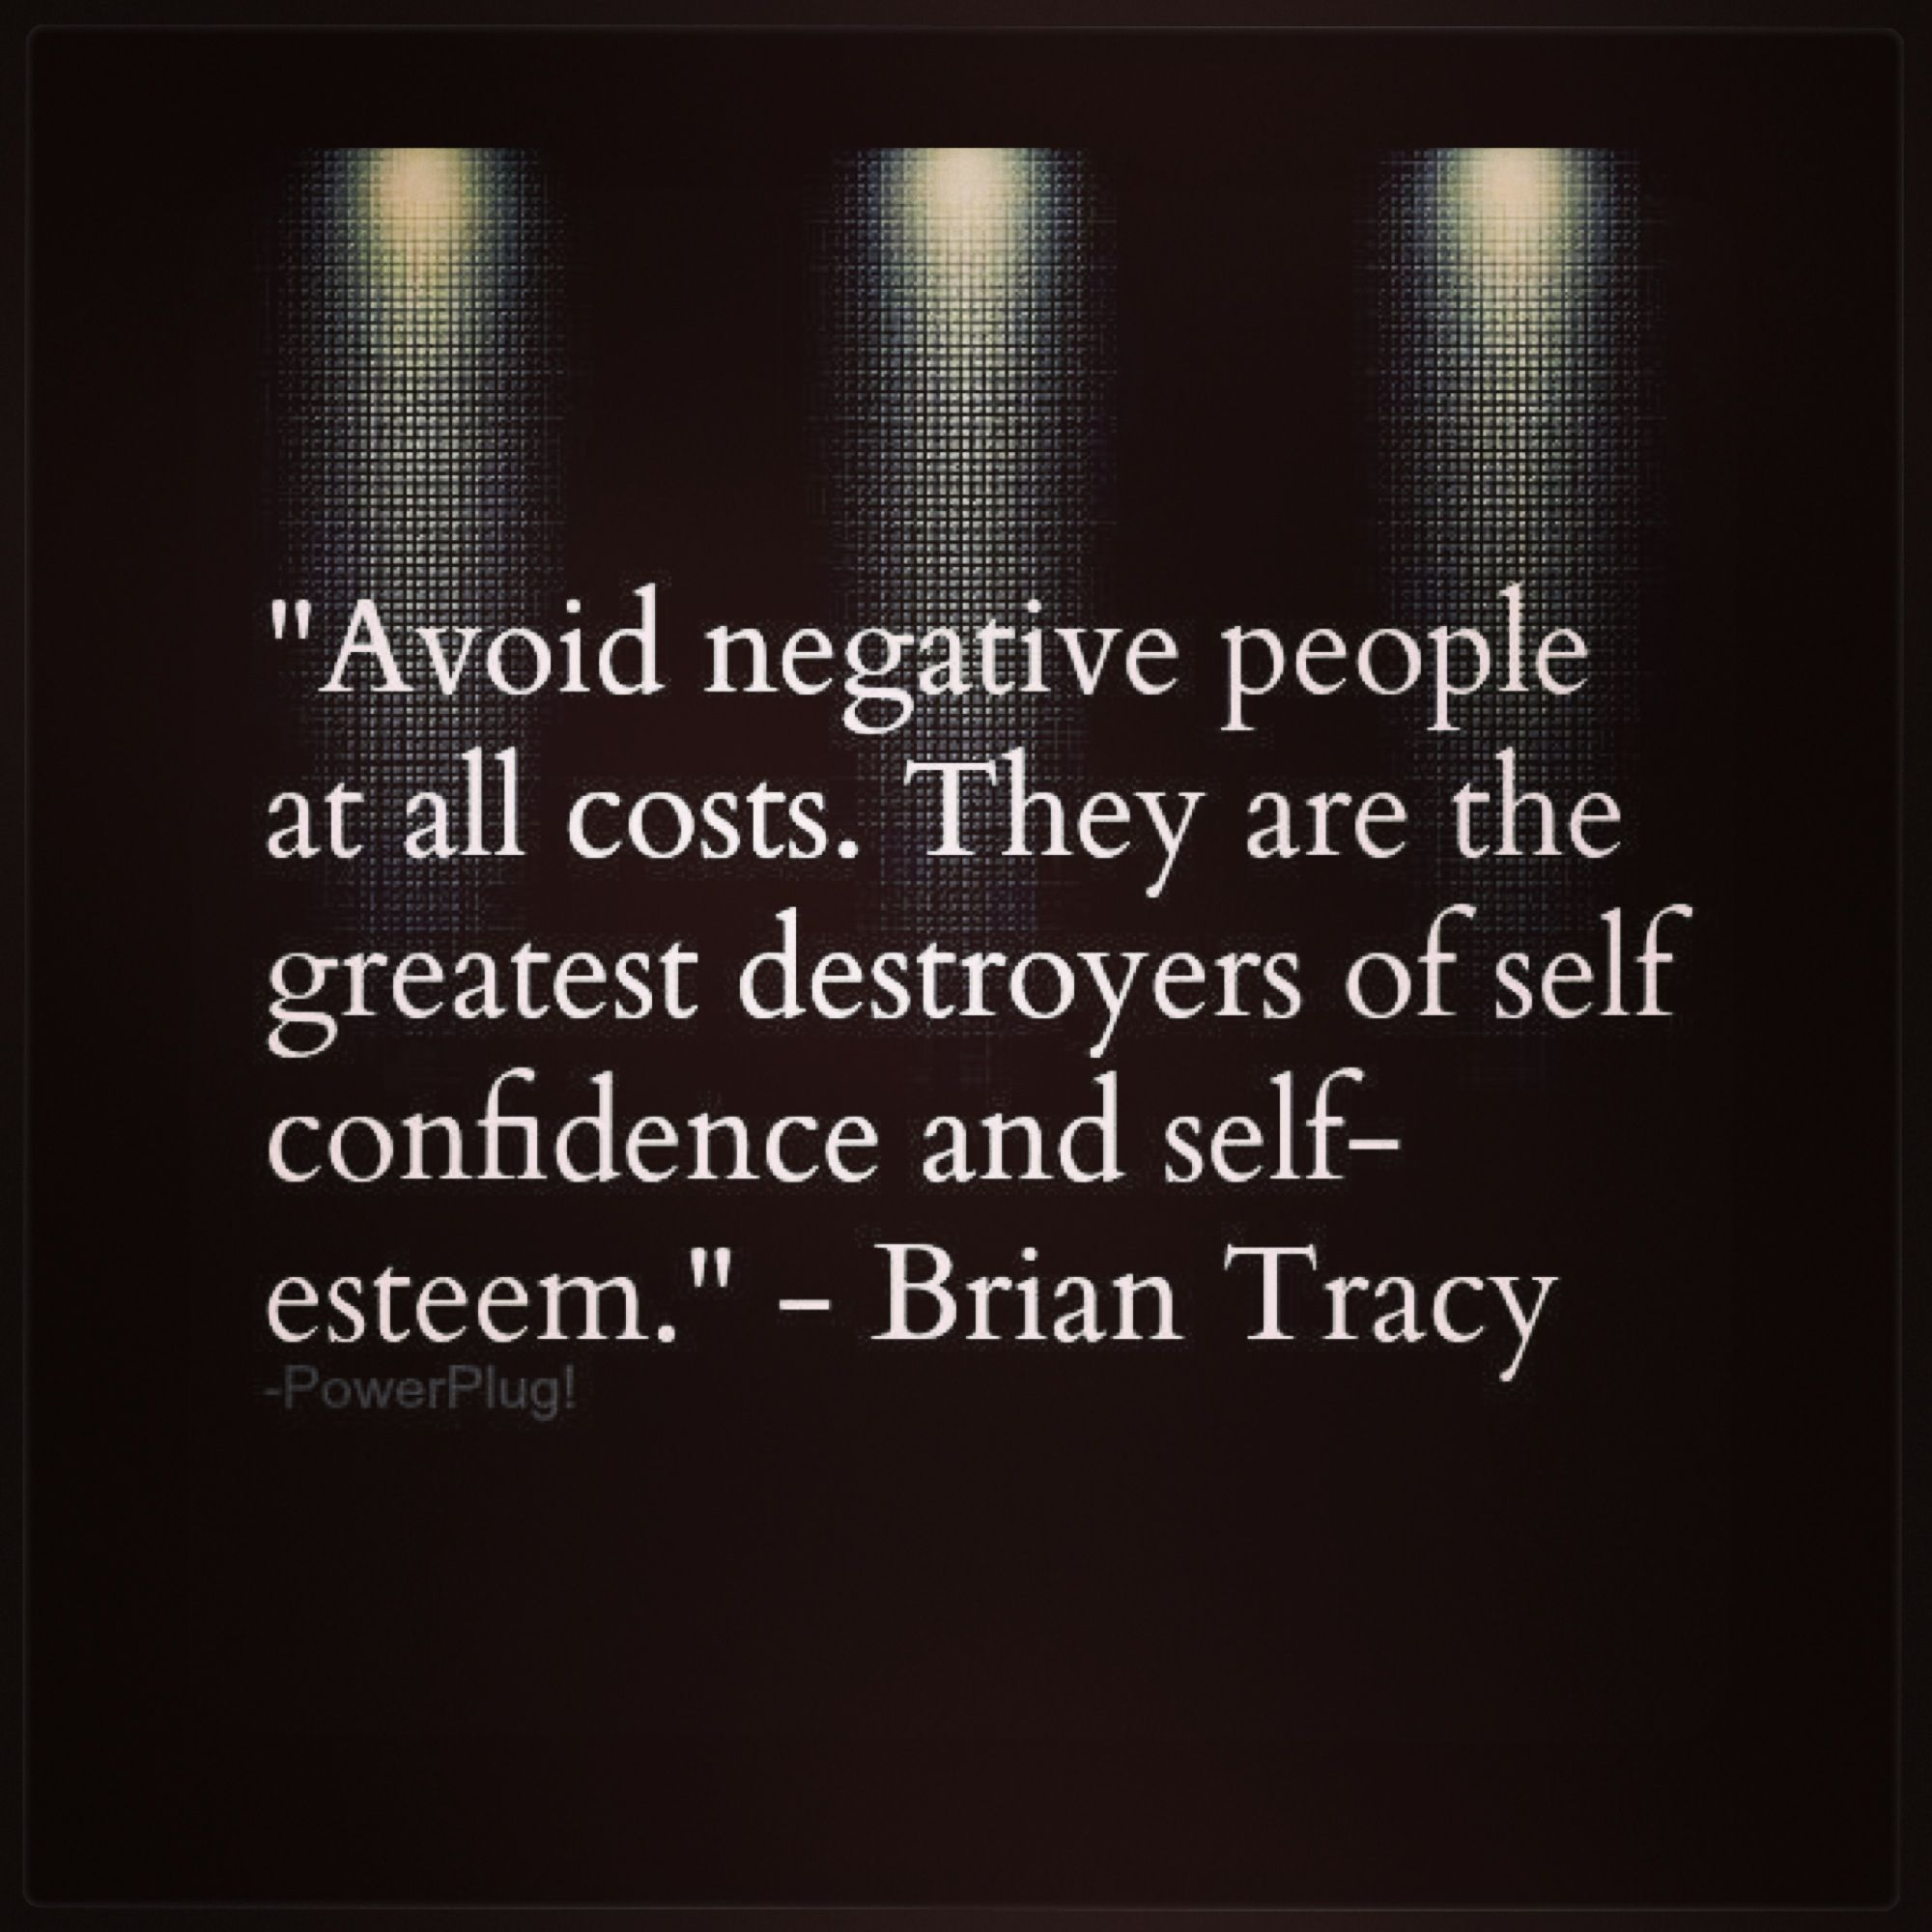 Pin By Van Bradley On Positive Thinking Mean People Quotes People Quotes Negative People Quotes